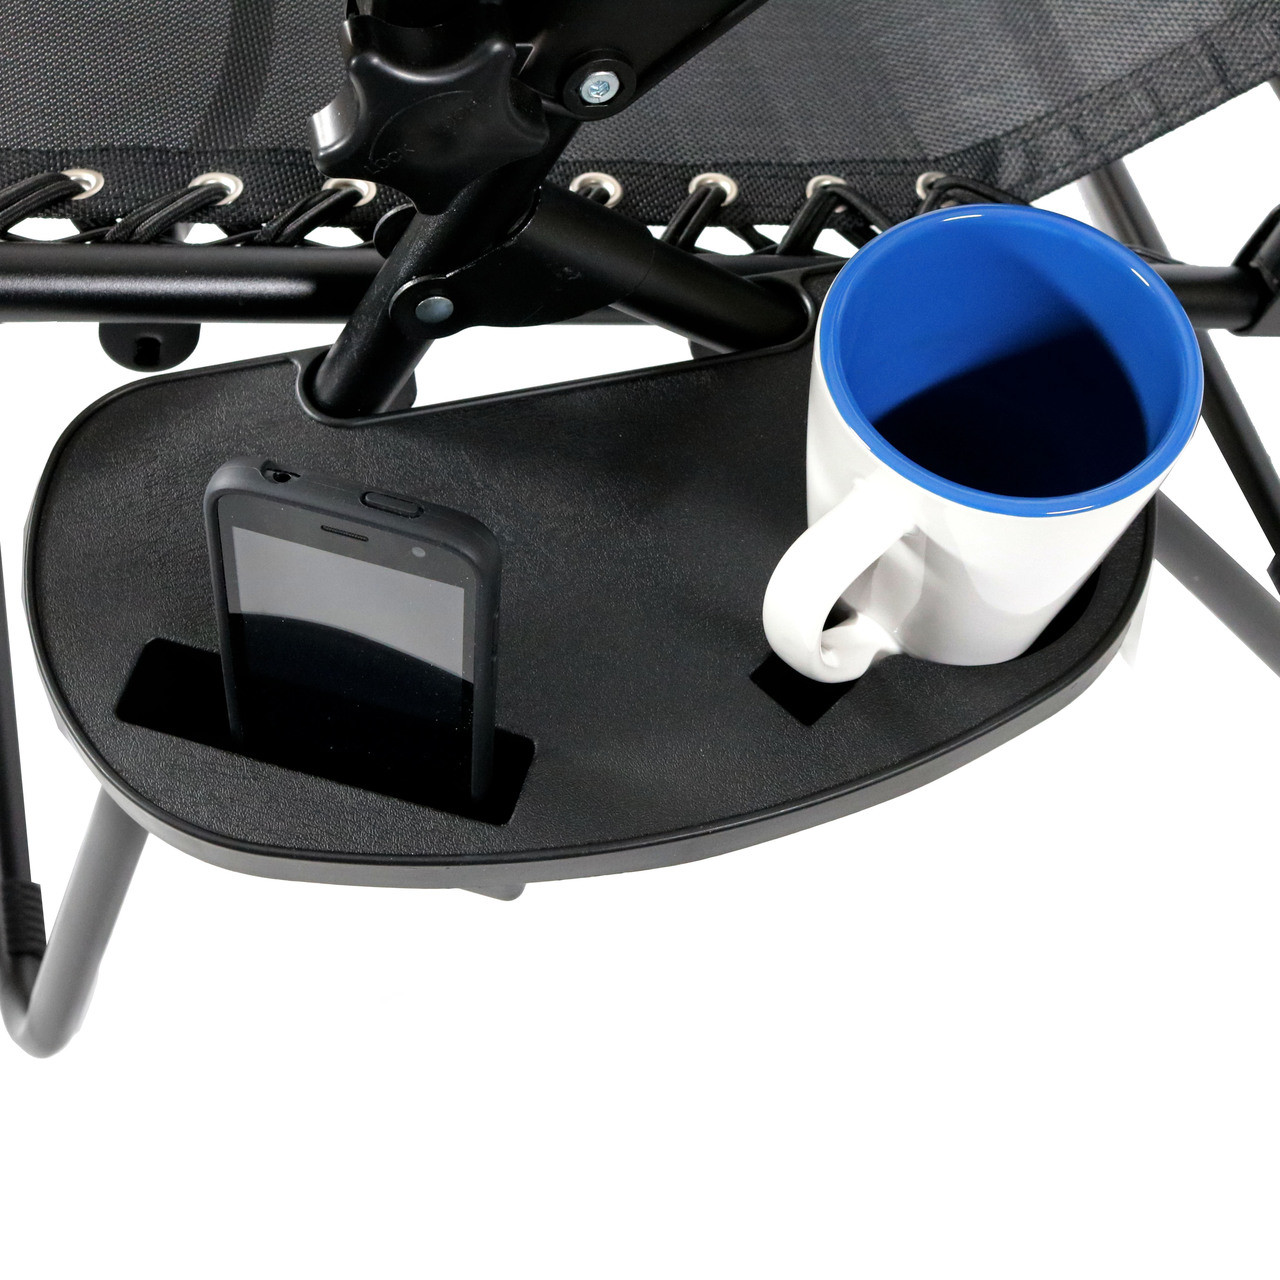 video game chair with cup holder sofa and covers amazon sunnydaze zero gravity mobile device slot